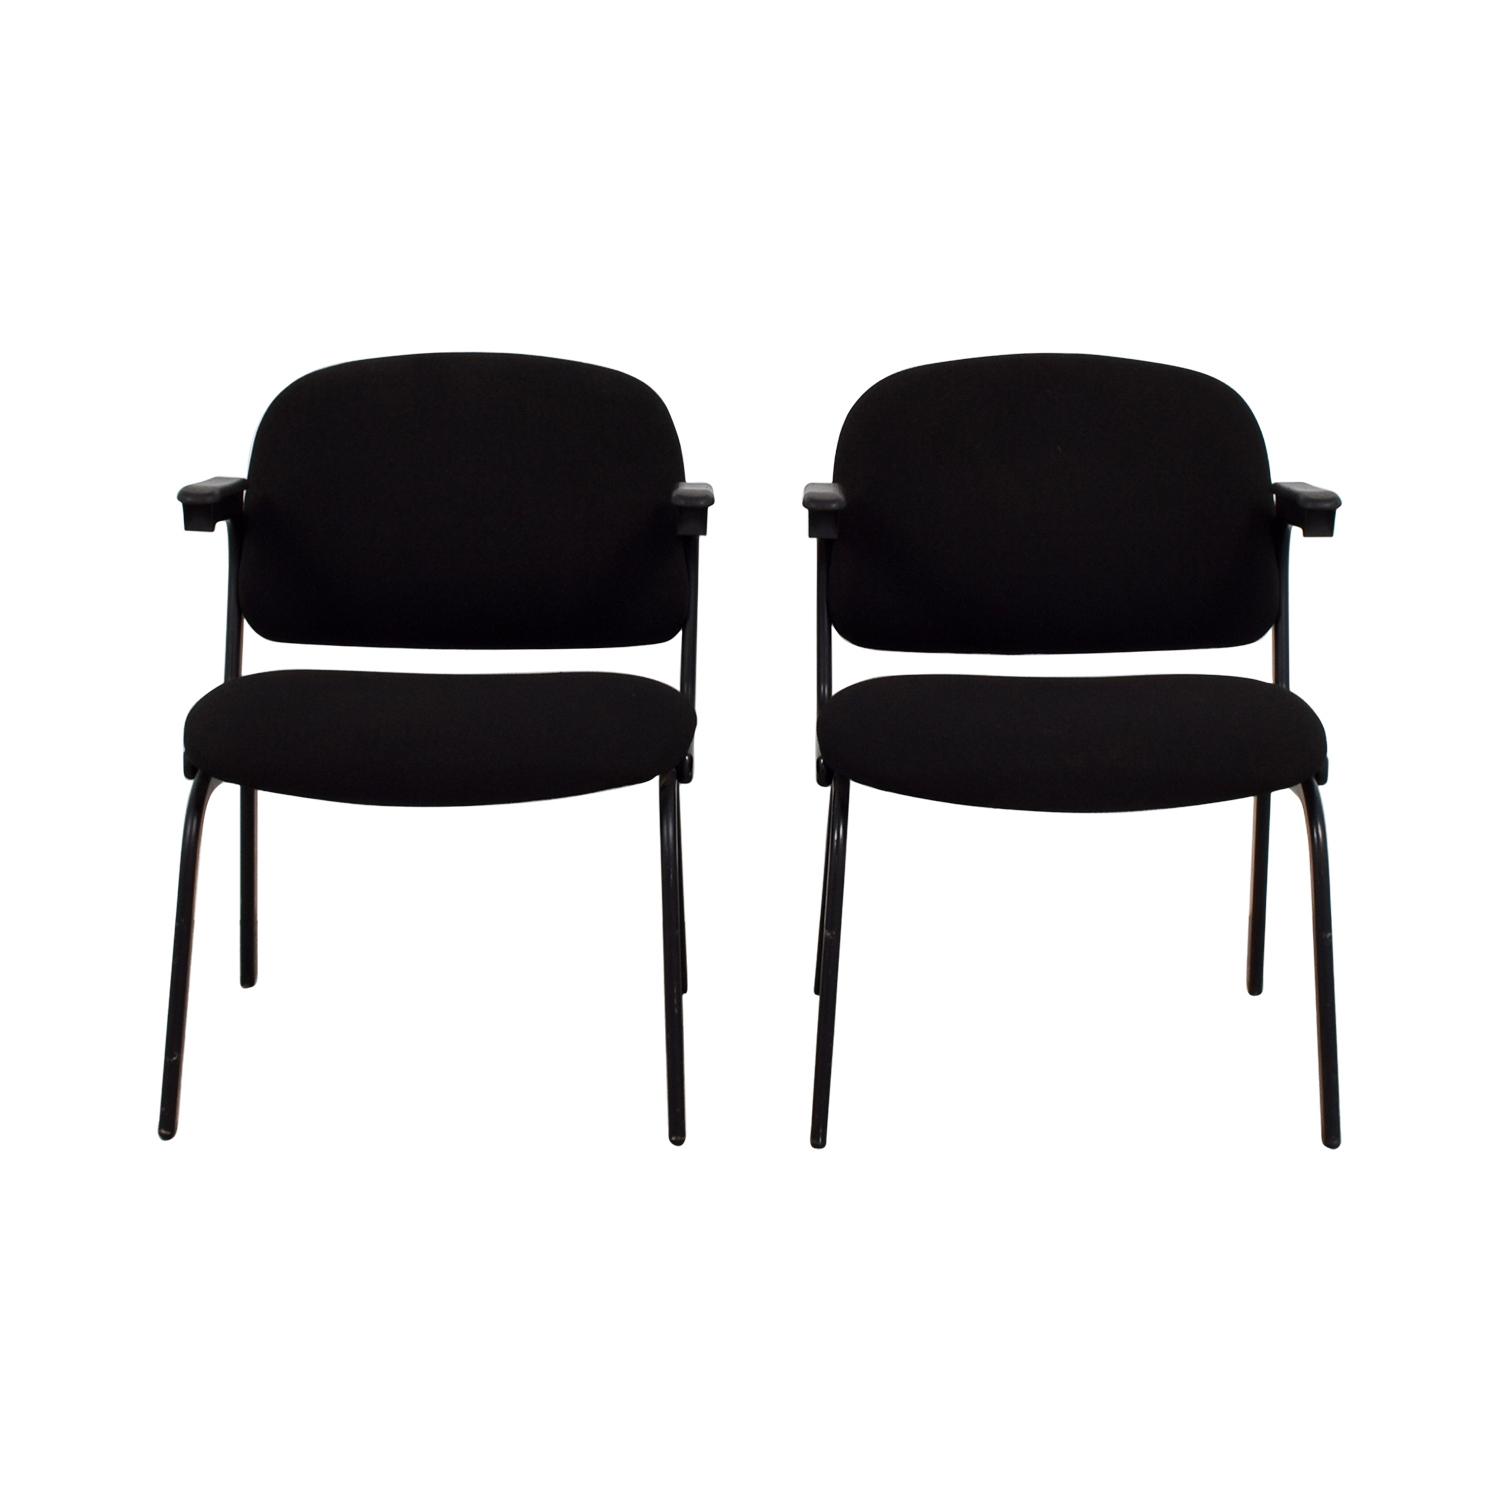 United United Black Fabric Chairs coupon